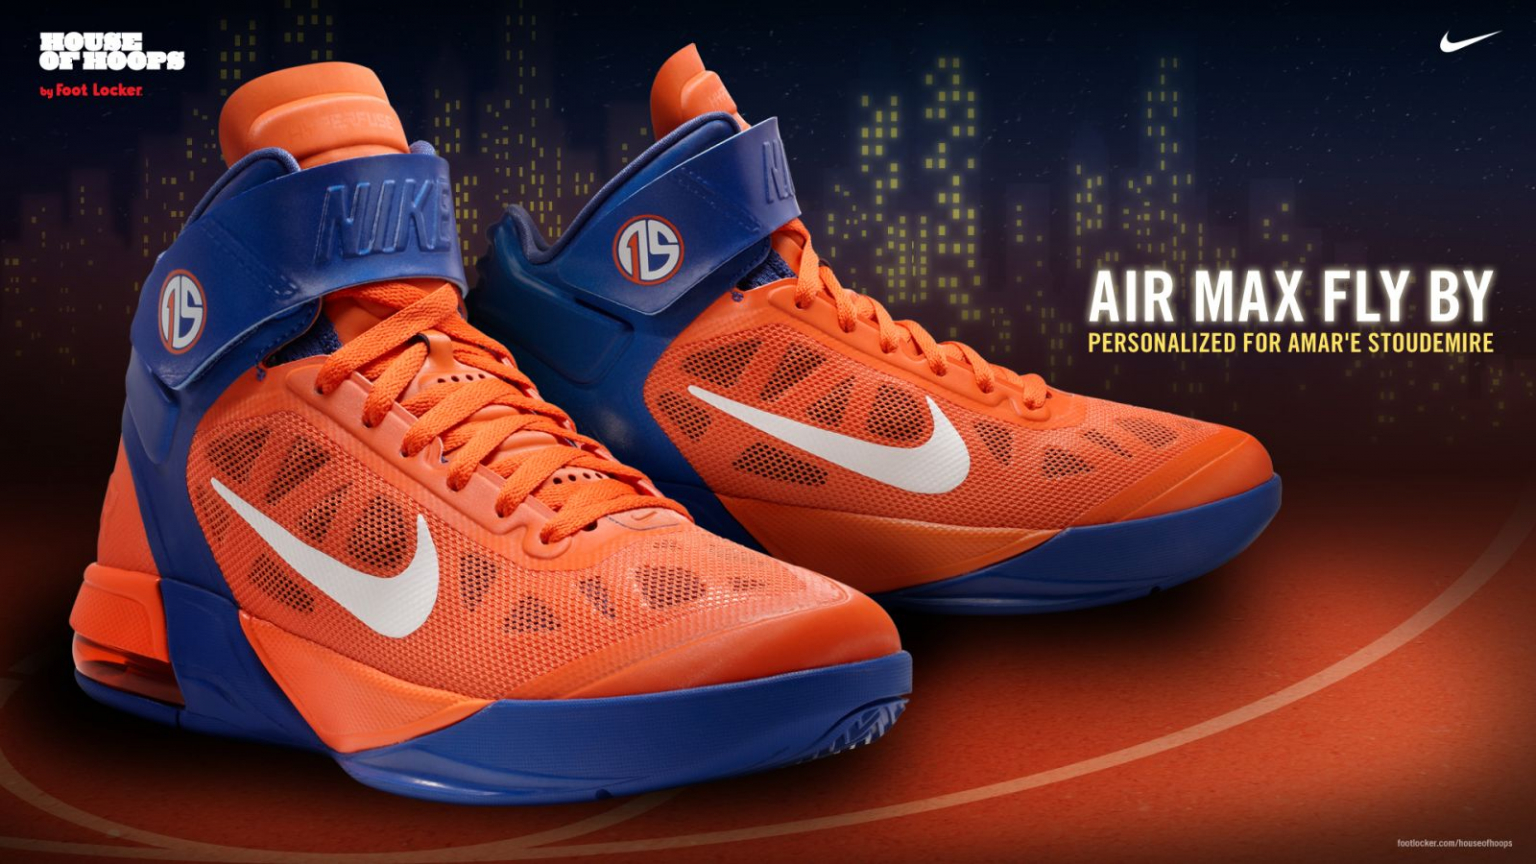 Free Download Nike Basketball Shoes Wallpaper Nike Air Max Fly By